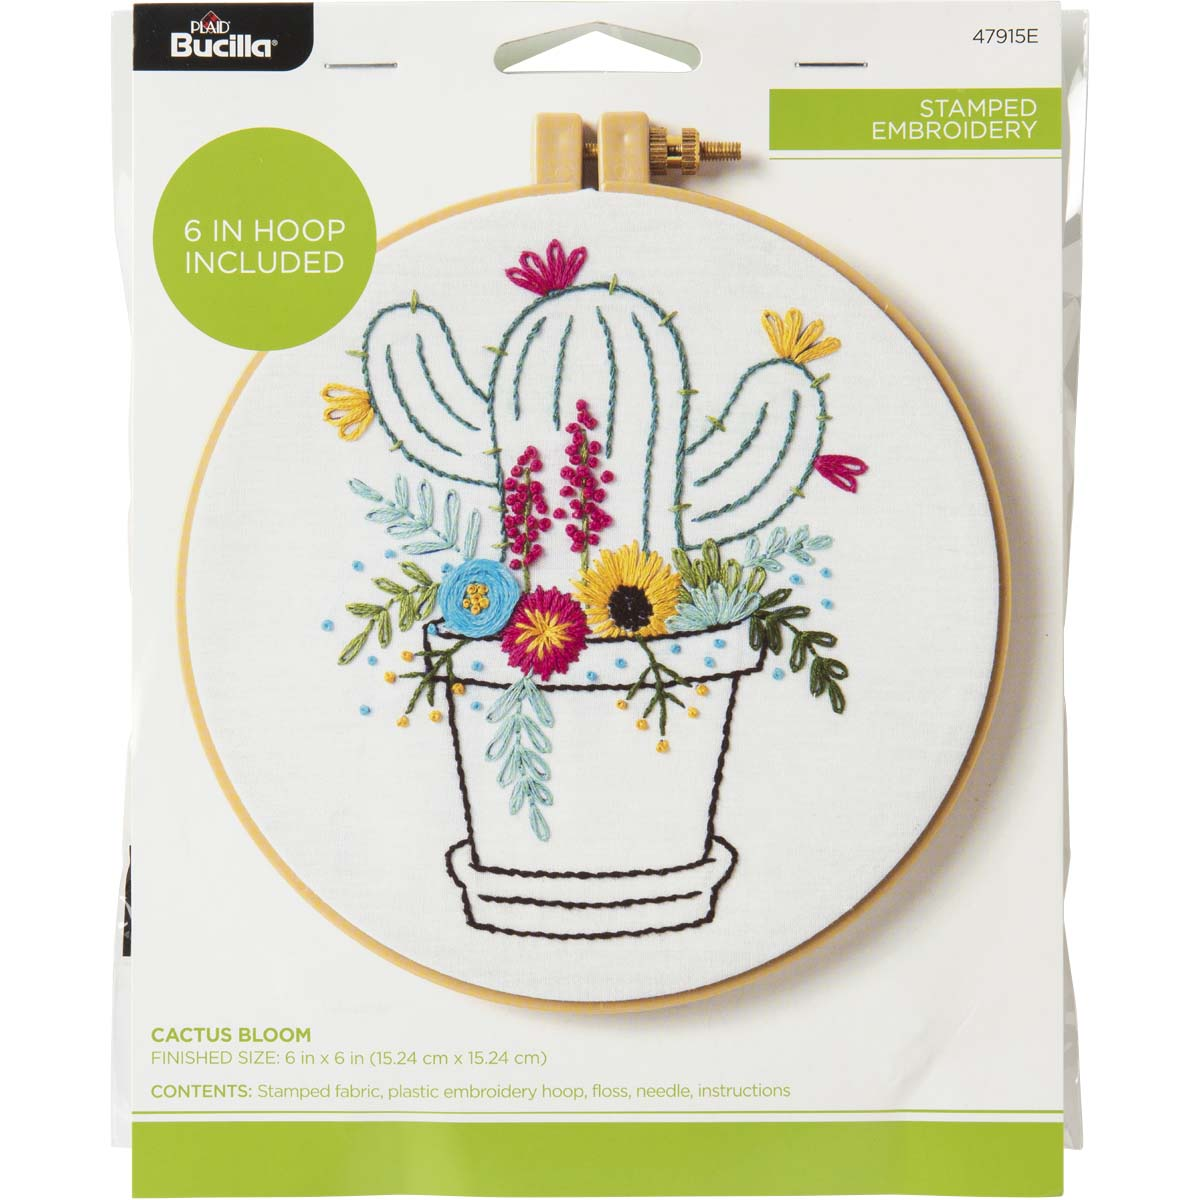 Bucilla ® Stamped Embroidery - Cactus Bloom - 47915E